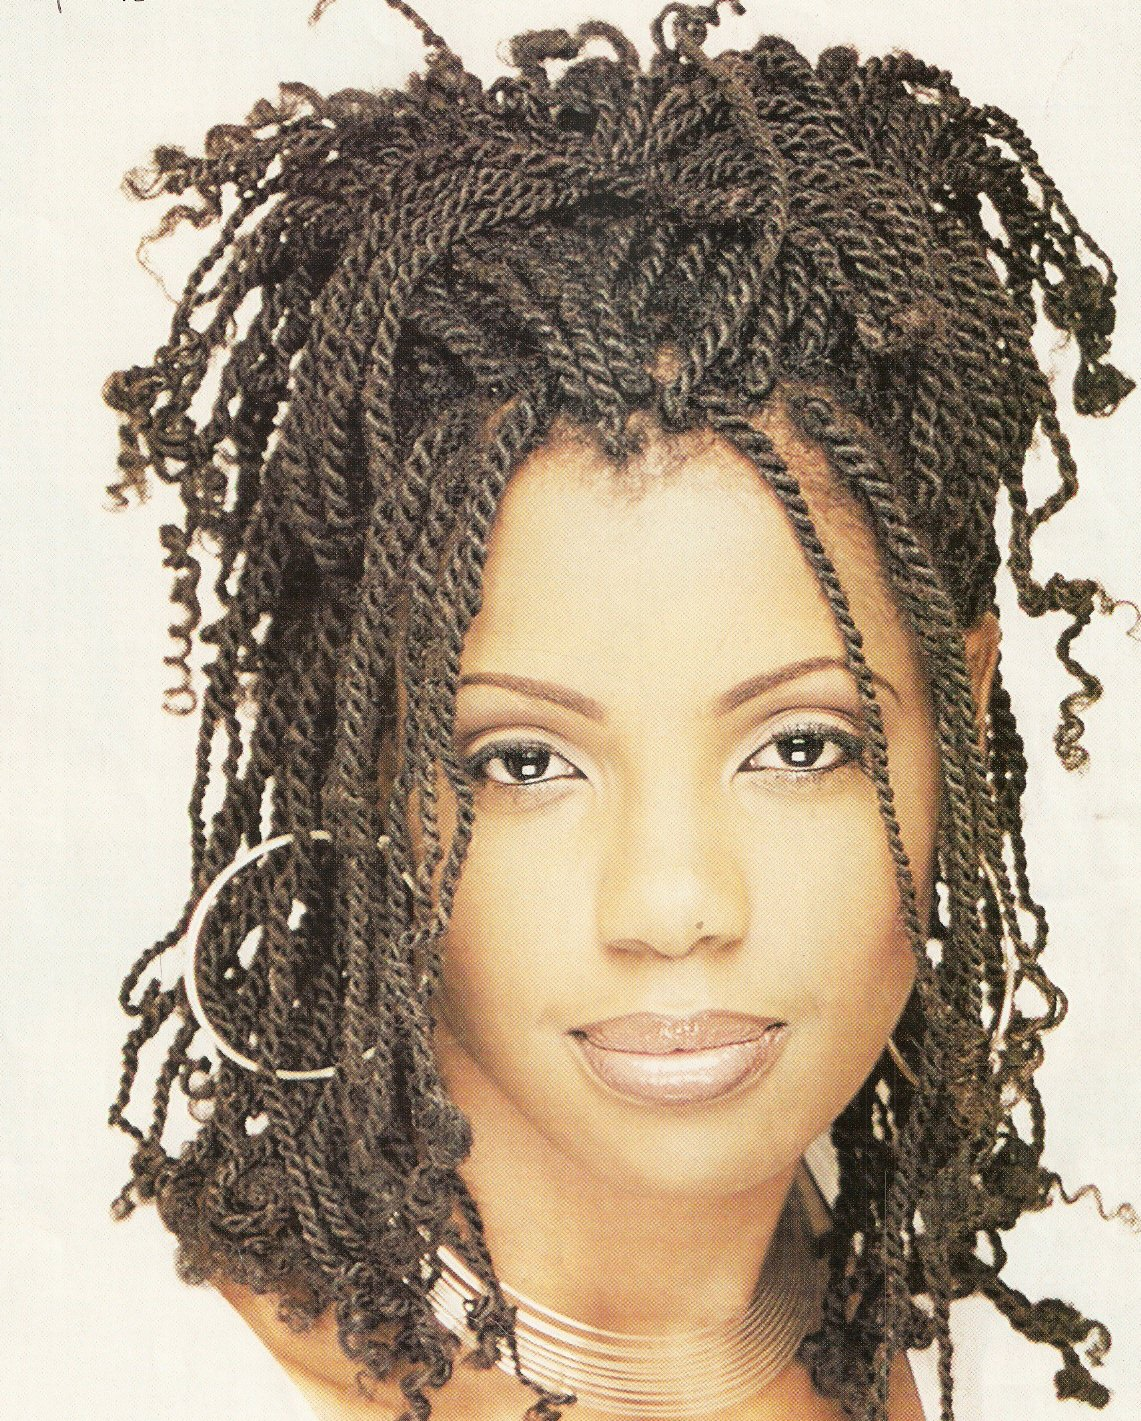 styles use this braiding gallery to learn about natural hairstyles. 1141 x 1421.African Jumbo Braids Hairstyles